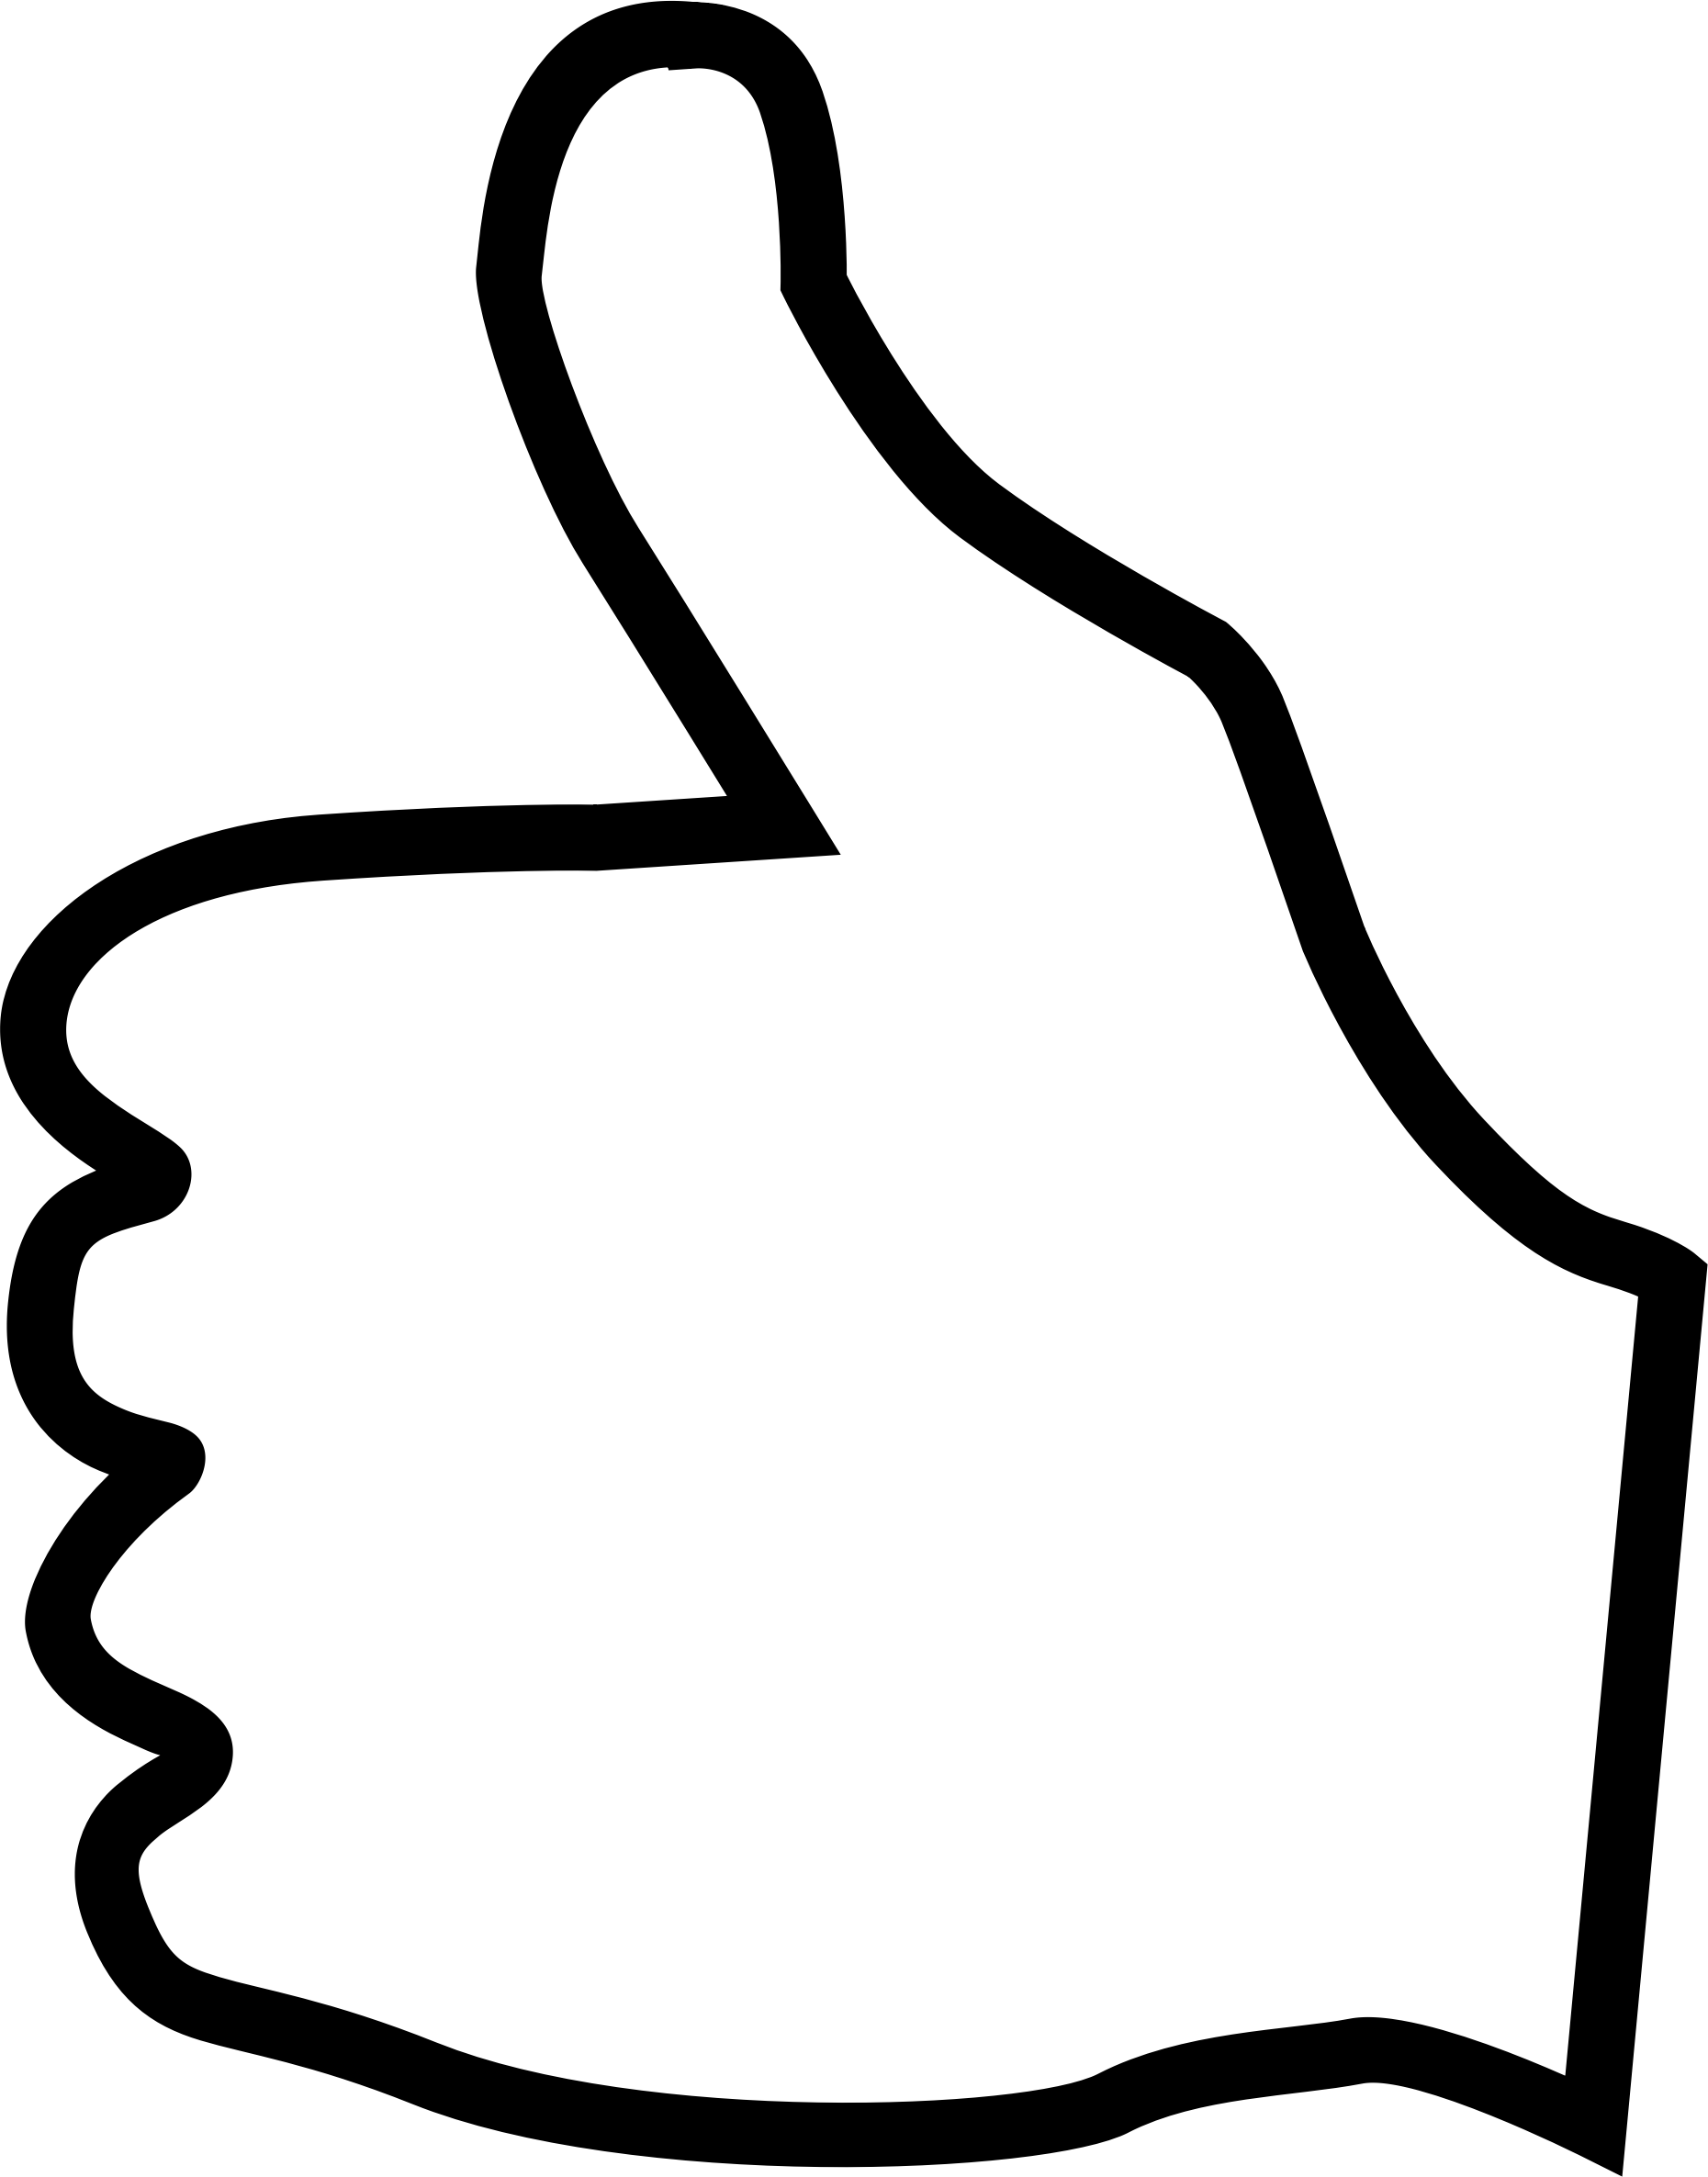 ... Free Thumbs Up Clipart Pictures - Clipartix ...